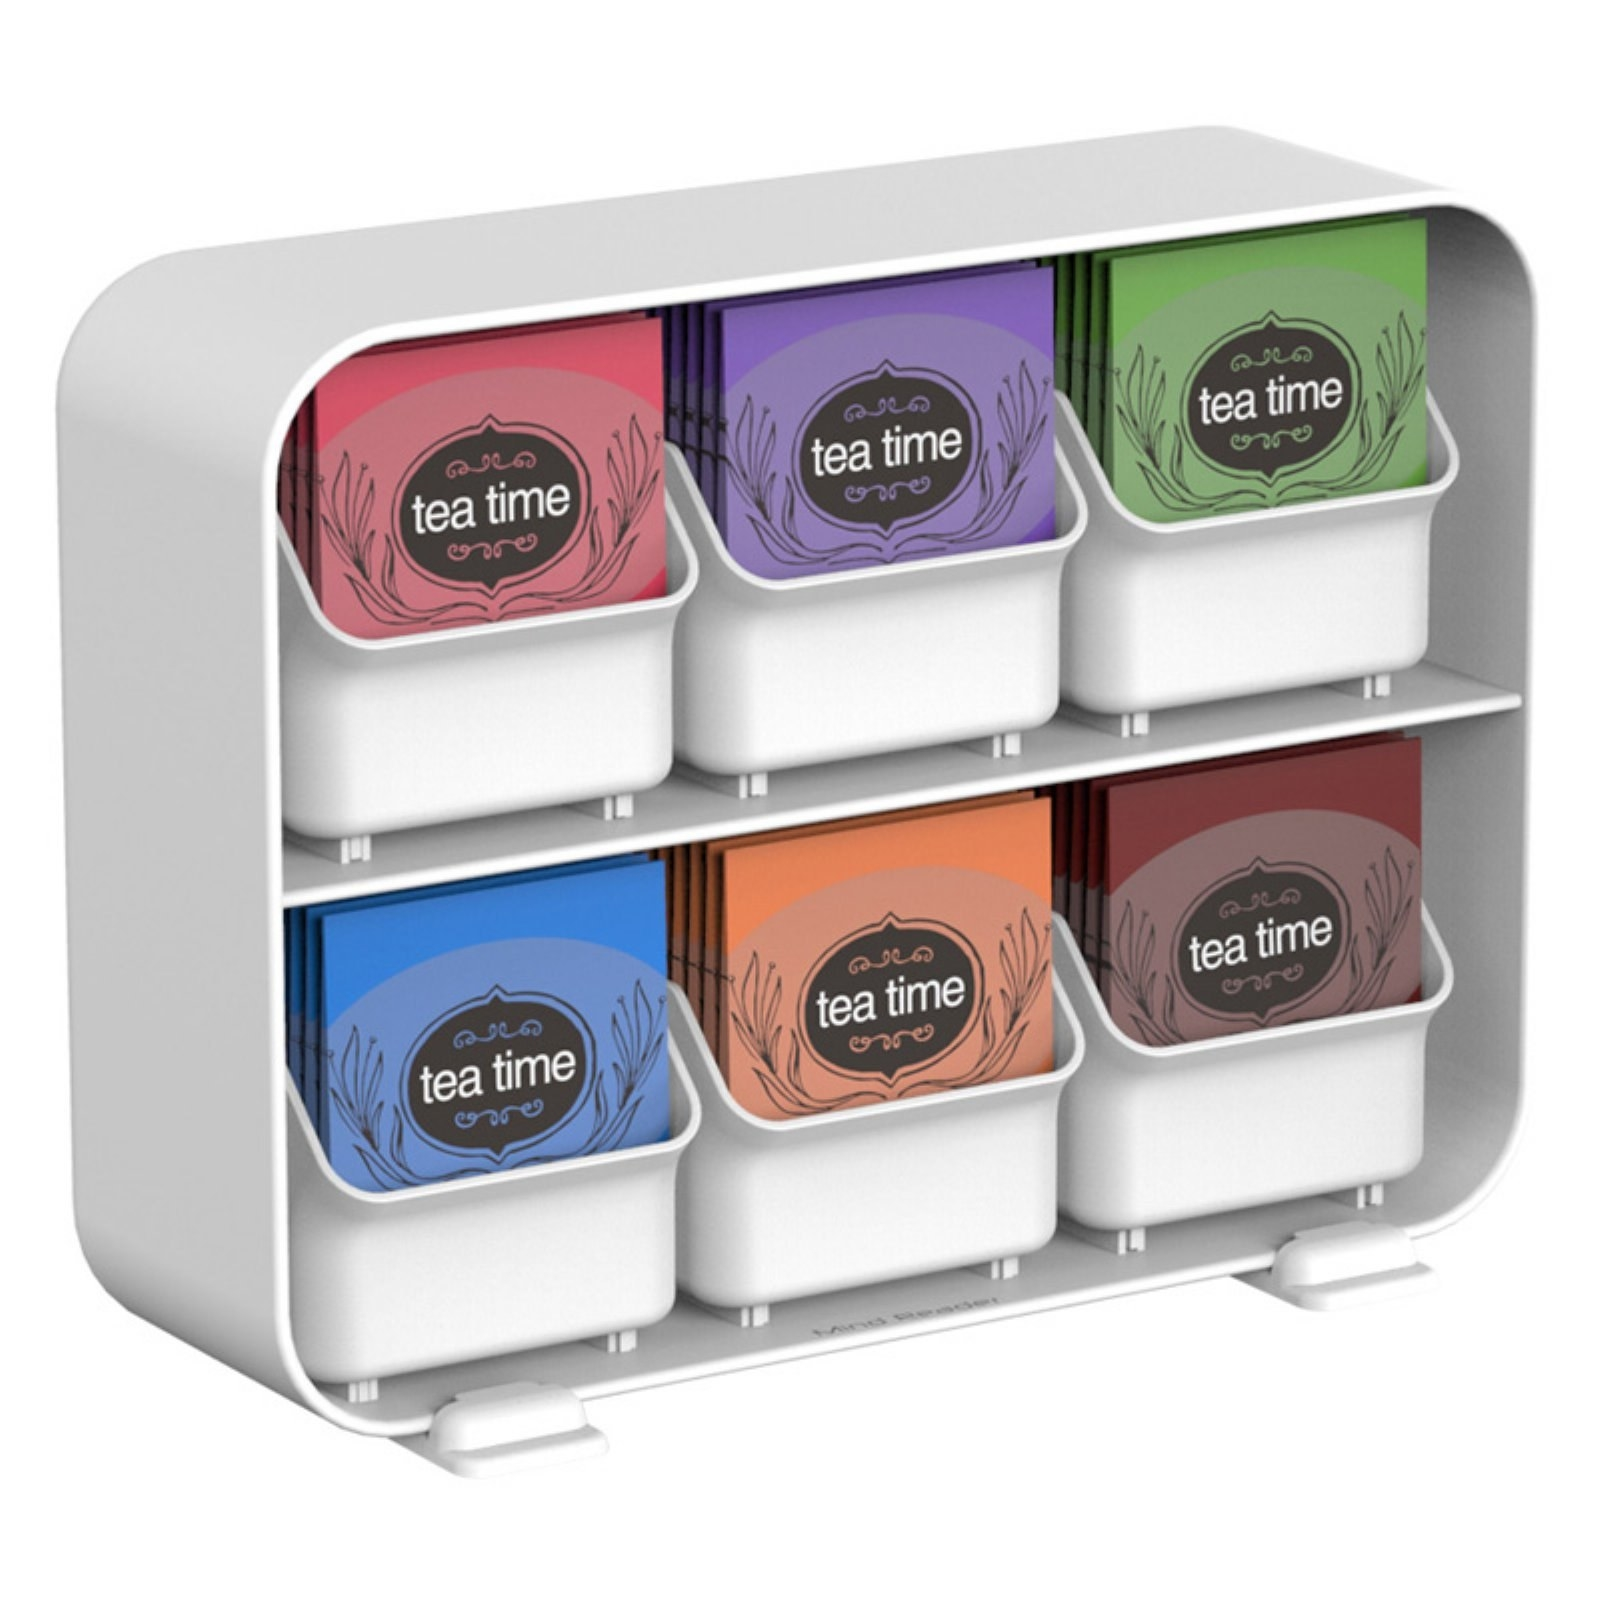 Product photo of Mind Reader tea bag organizer in white, featuring 6 removable drawers